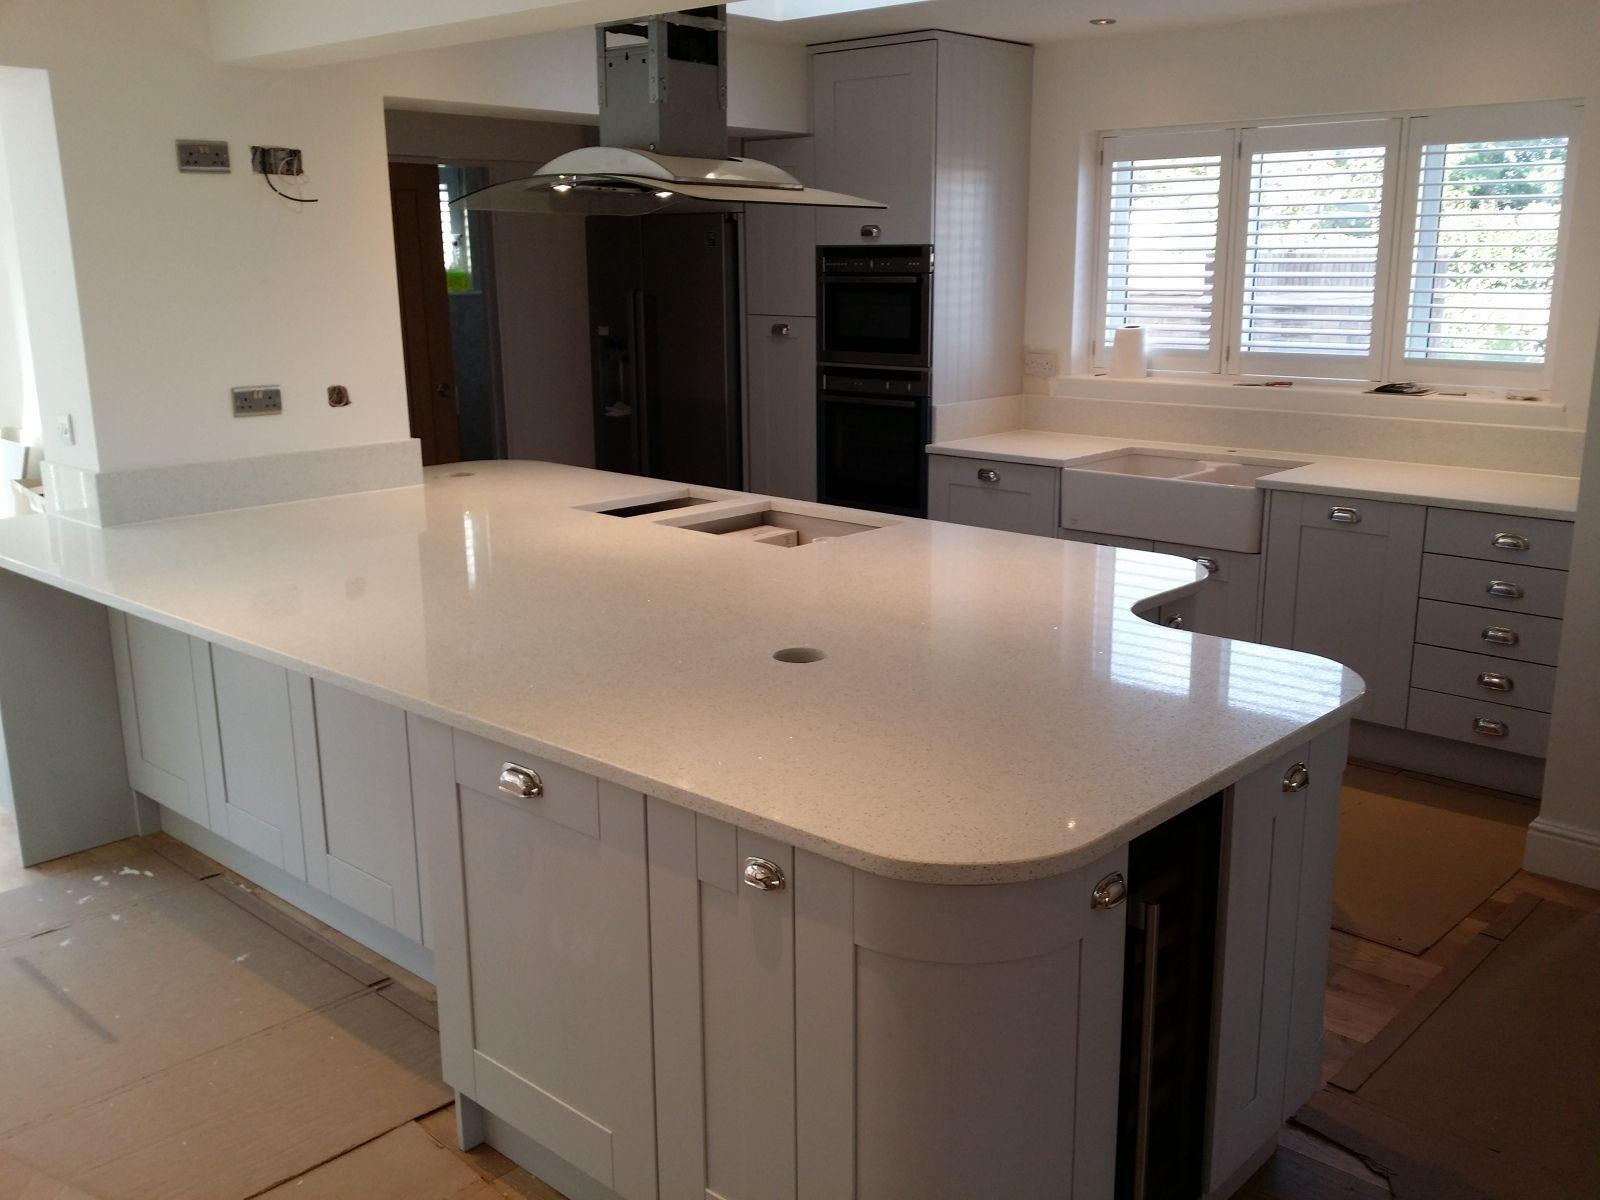 quartz white mirror worktop google search kitchen On kitchen quartz worktops